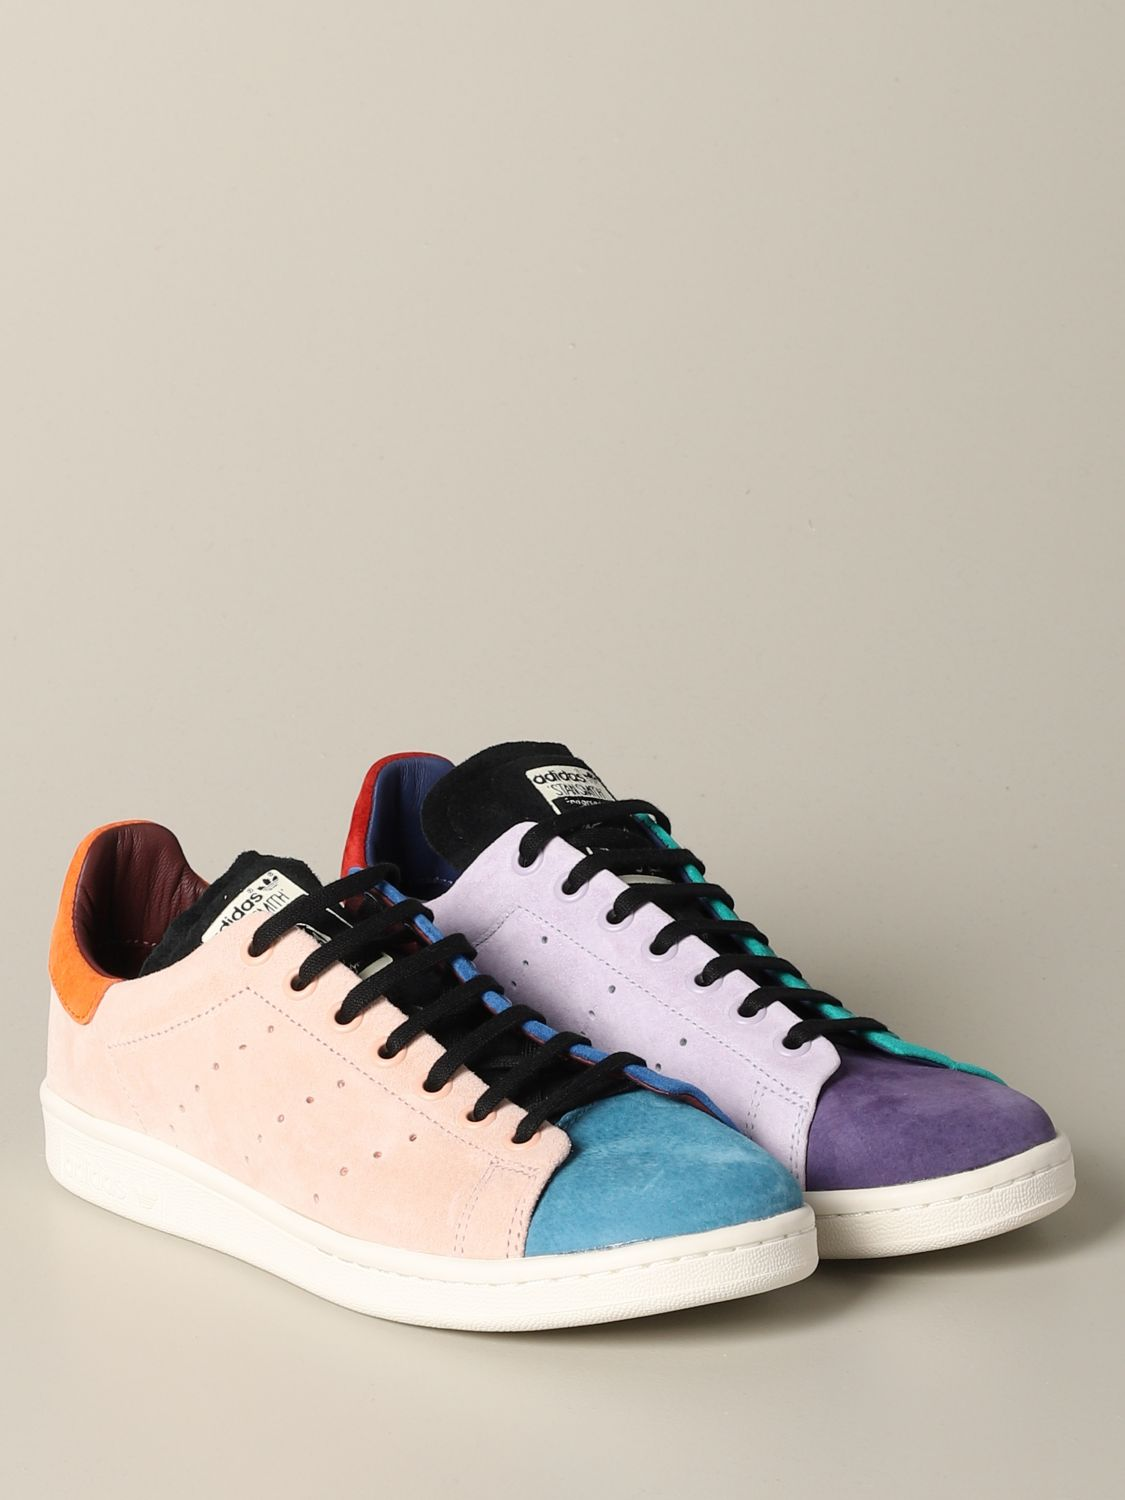 Trainers Adidas Originals: Shoes men Adidas Originals multicolor 2